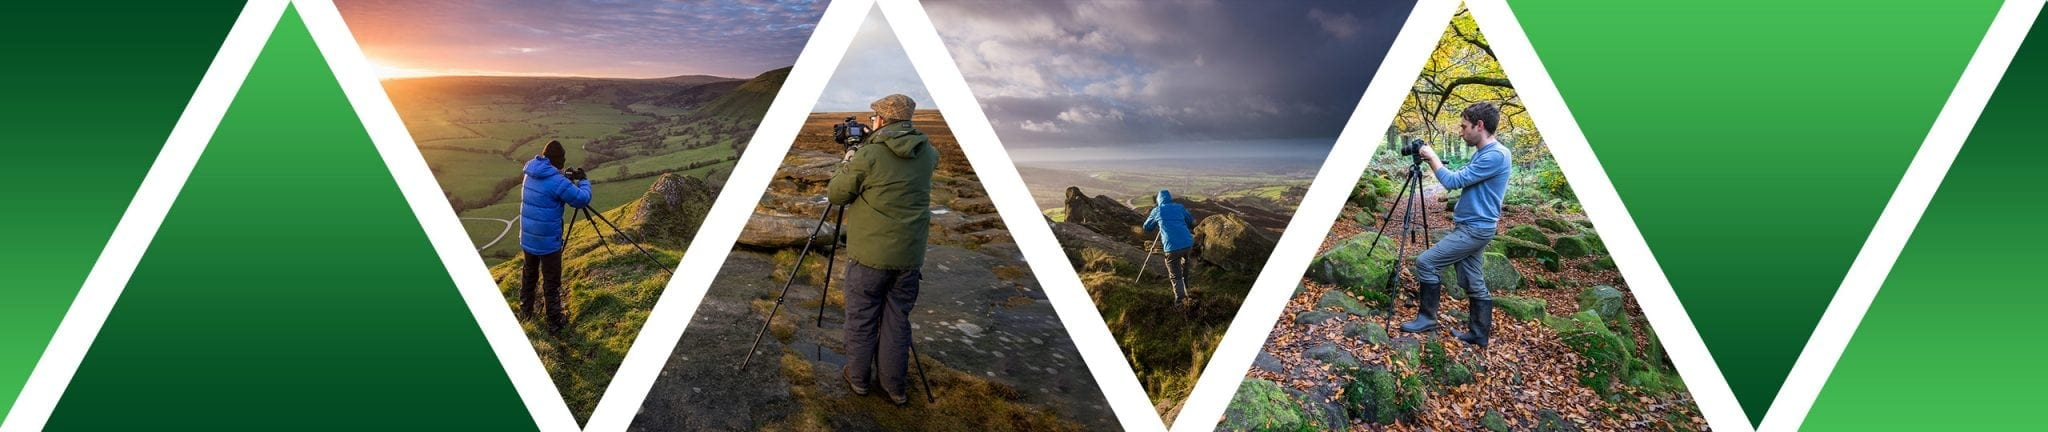 1-2-1 Peak District Photography Workshops